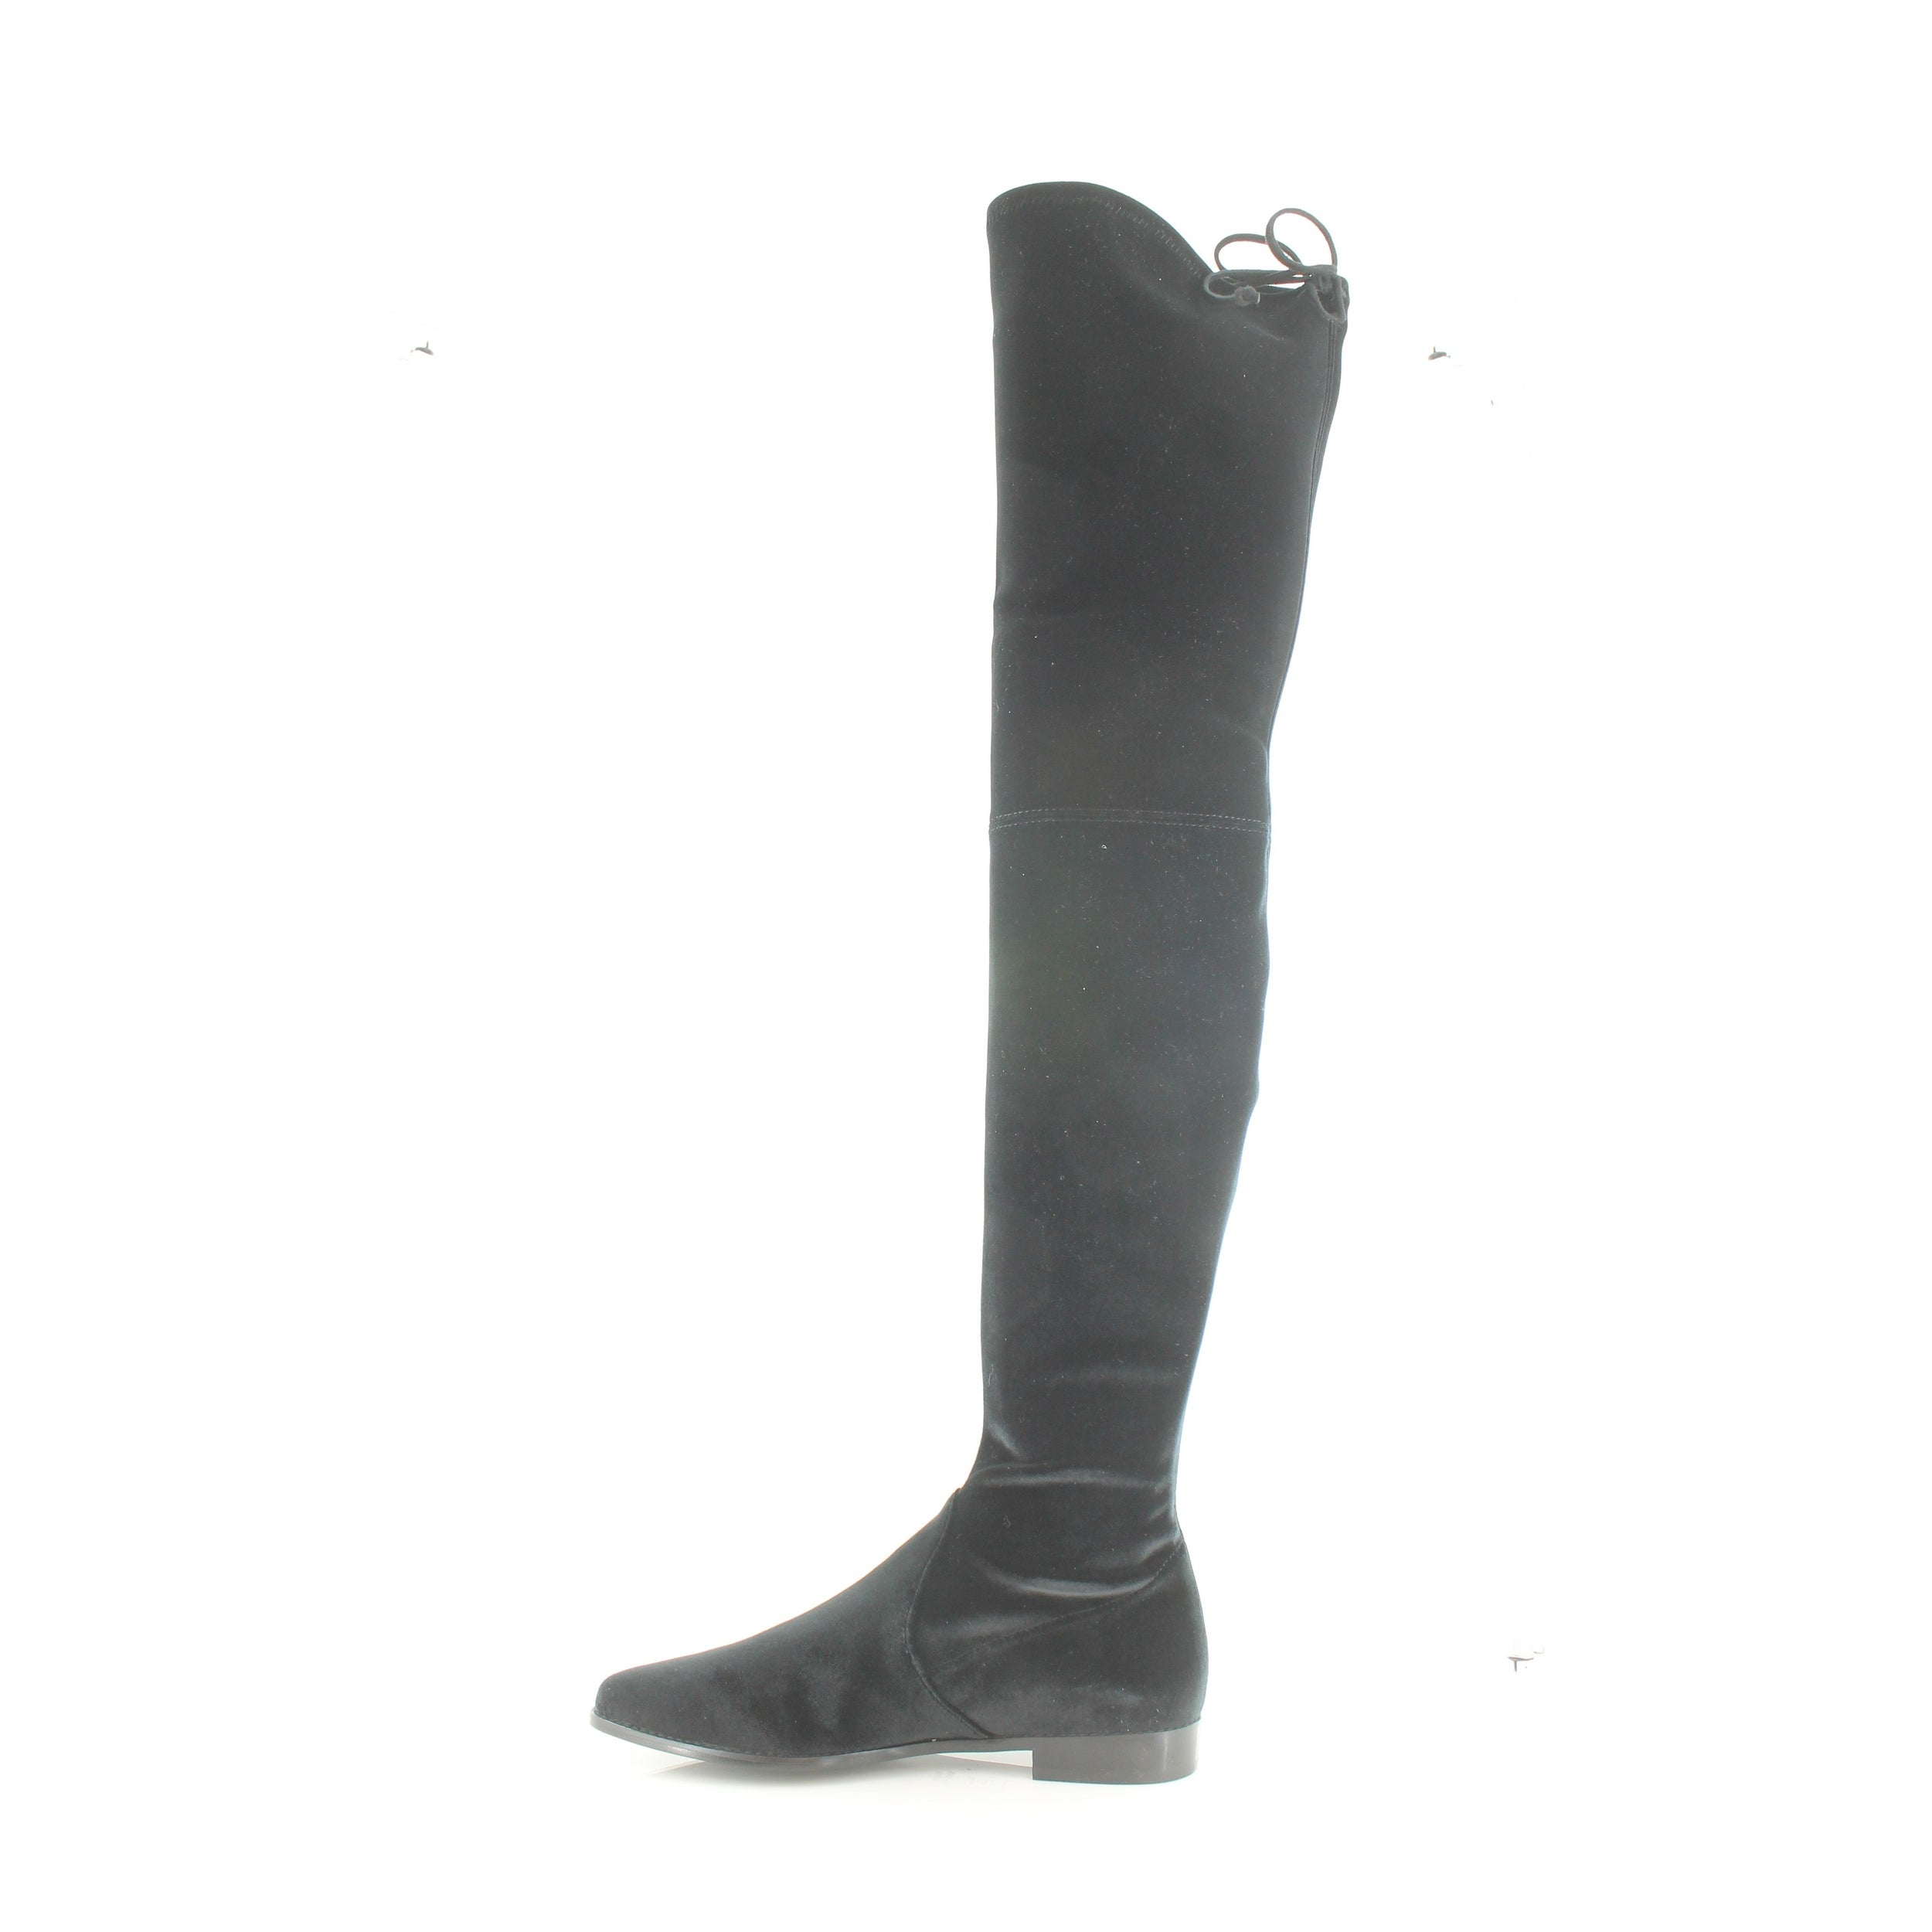 9d38feb96b8 Shop Stuart Weitzman LeggyLady Women s Boots Black - Free Shipping Today -  Overstock - 21550244